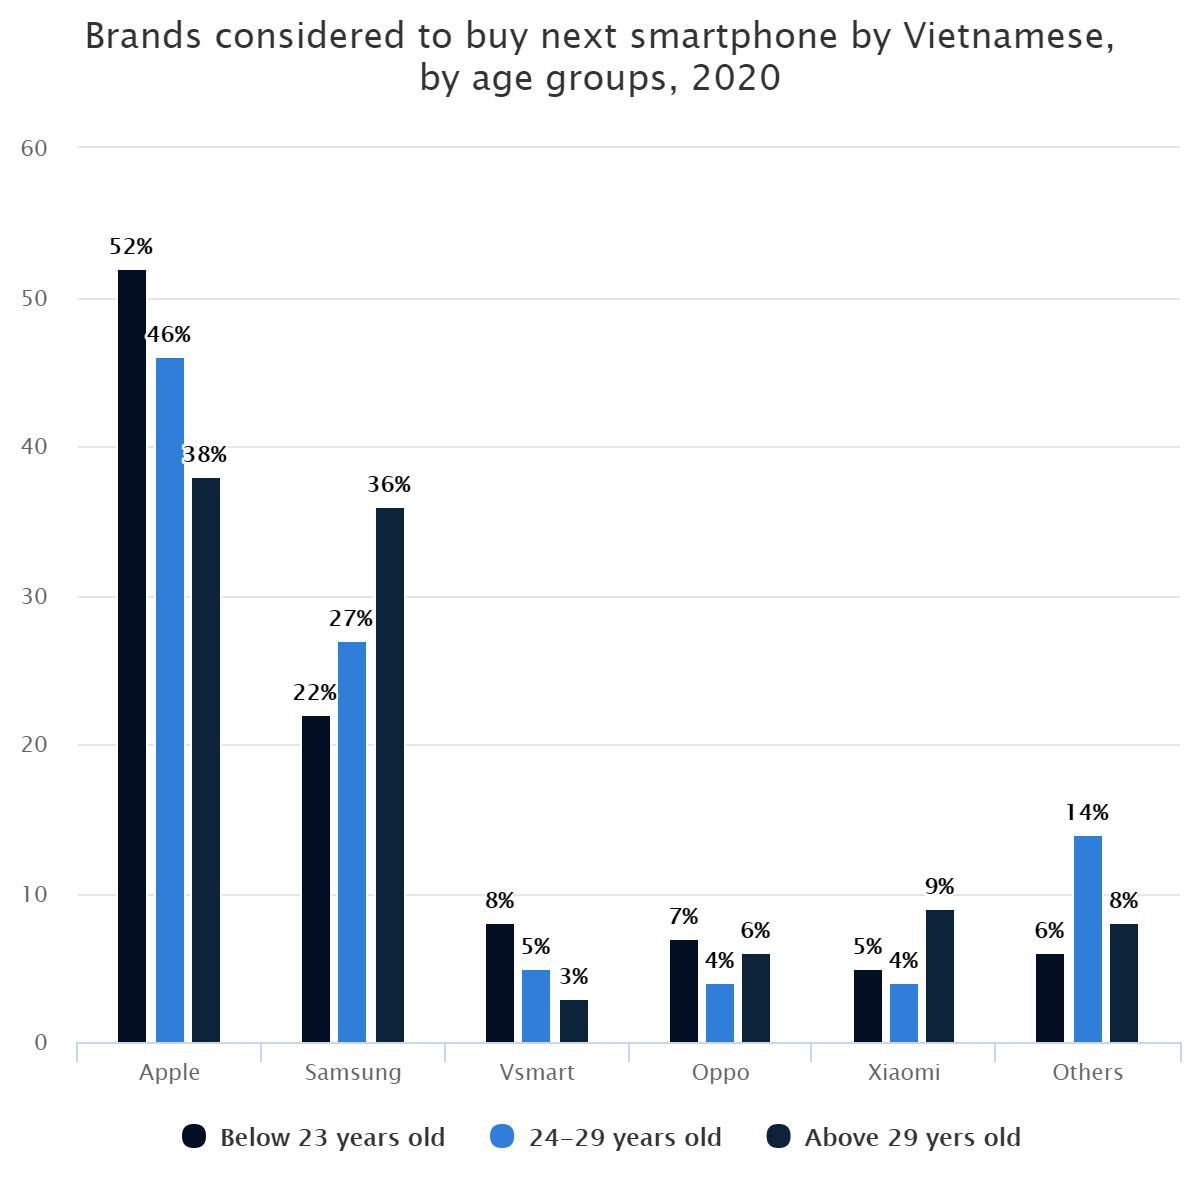 Brands considered to buy next smartphone by Vietnamese, by age groups, 2020